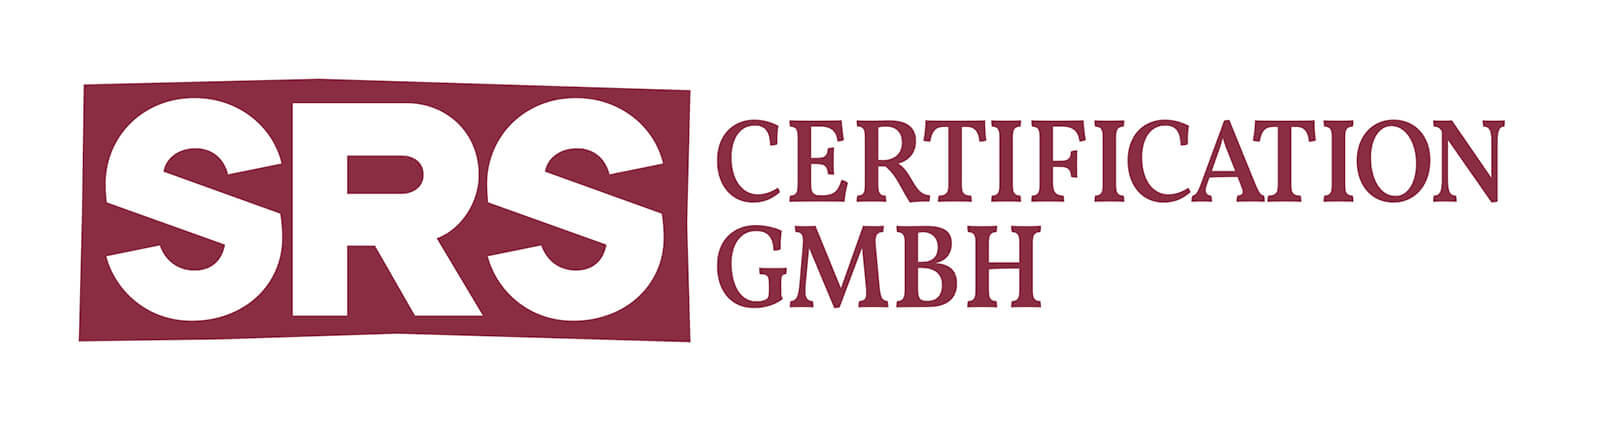 SRS Certification GMBH